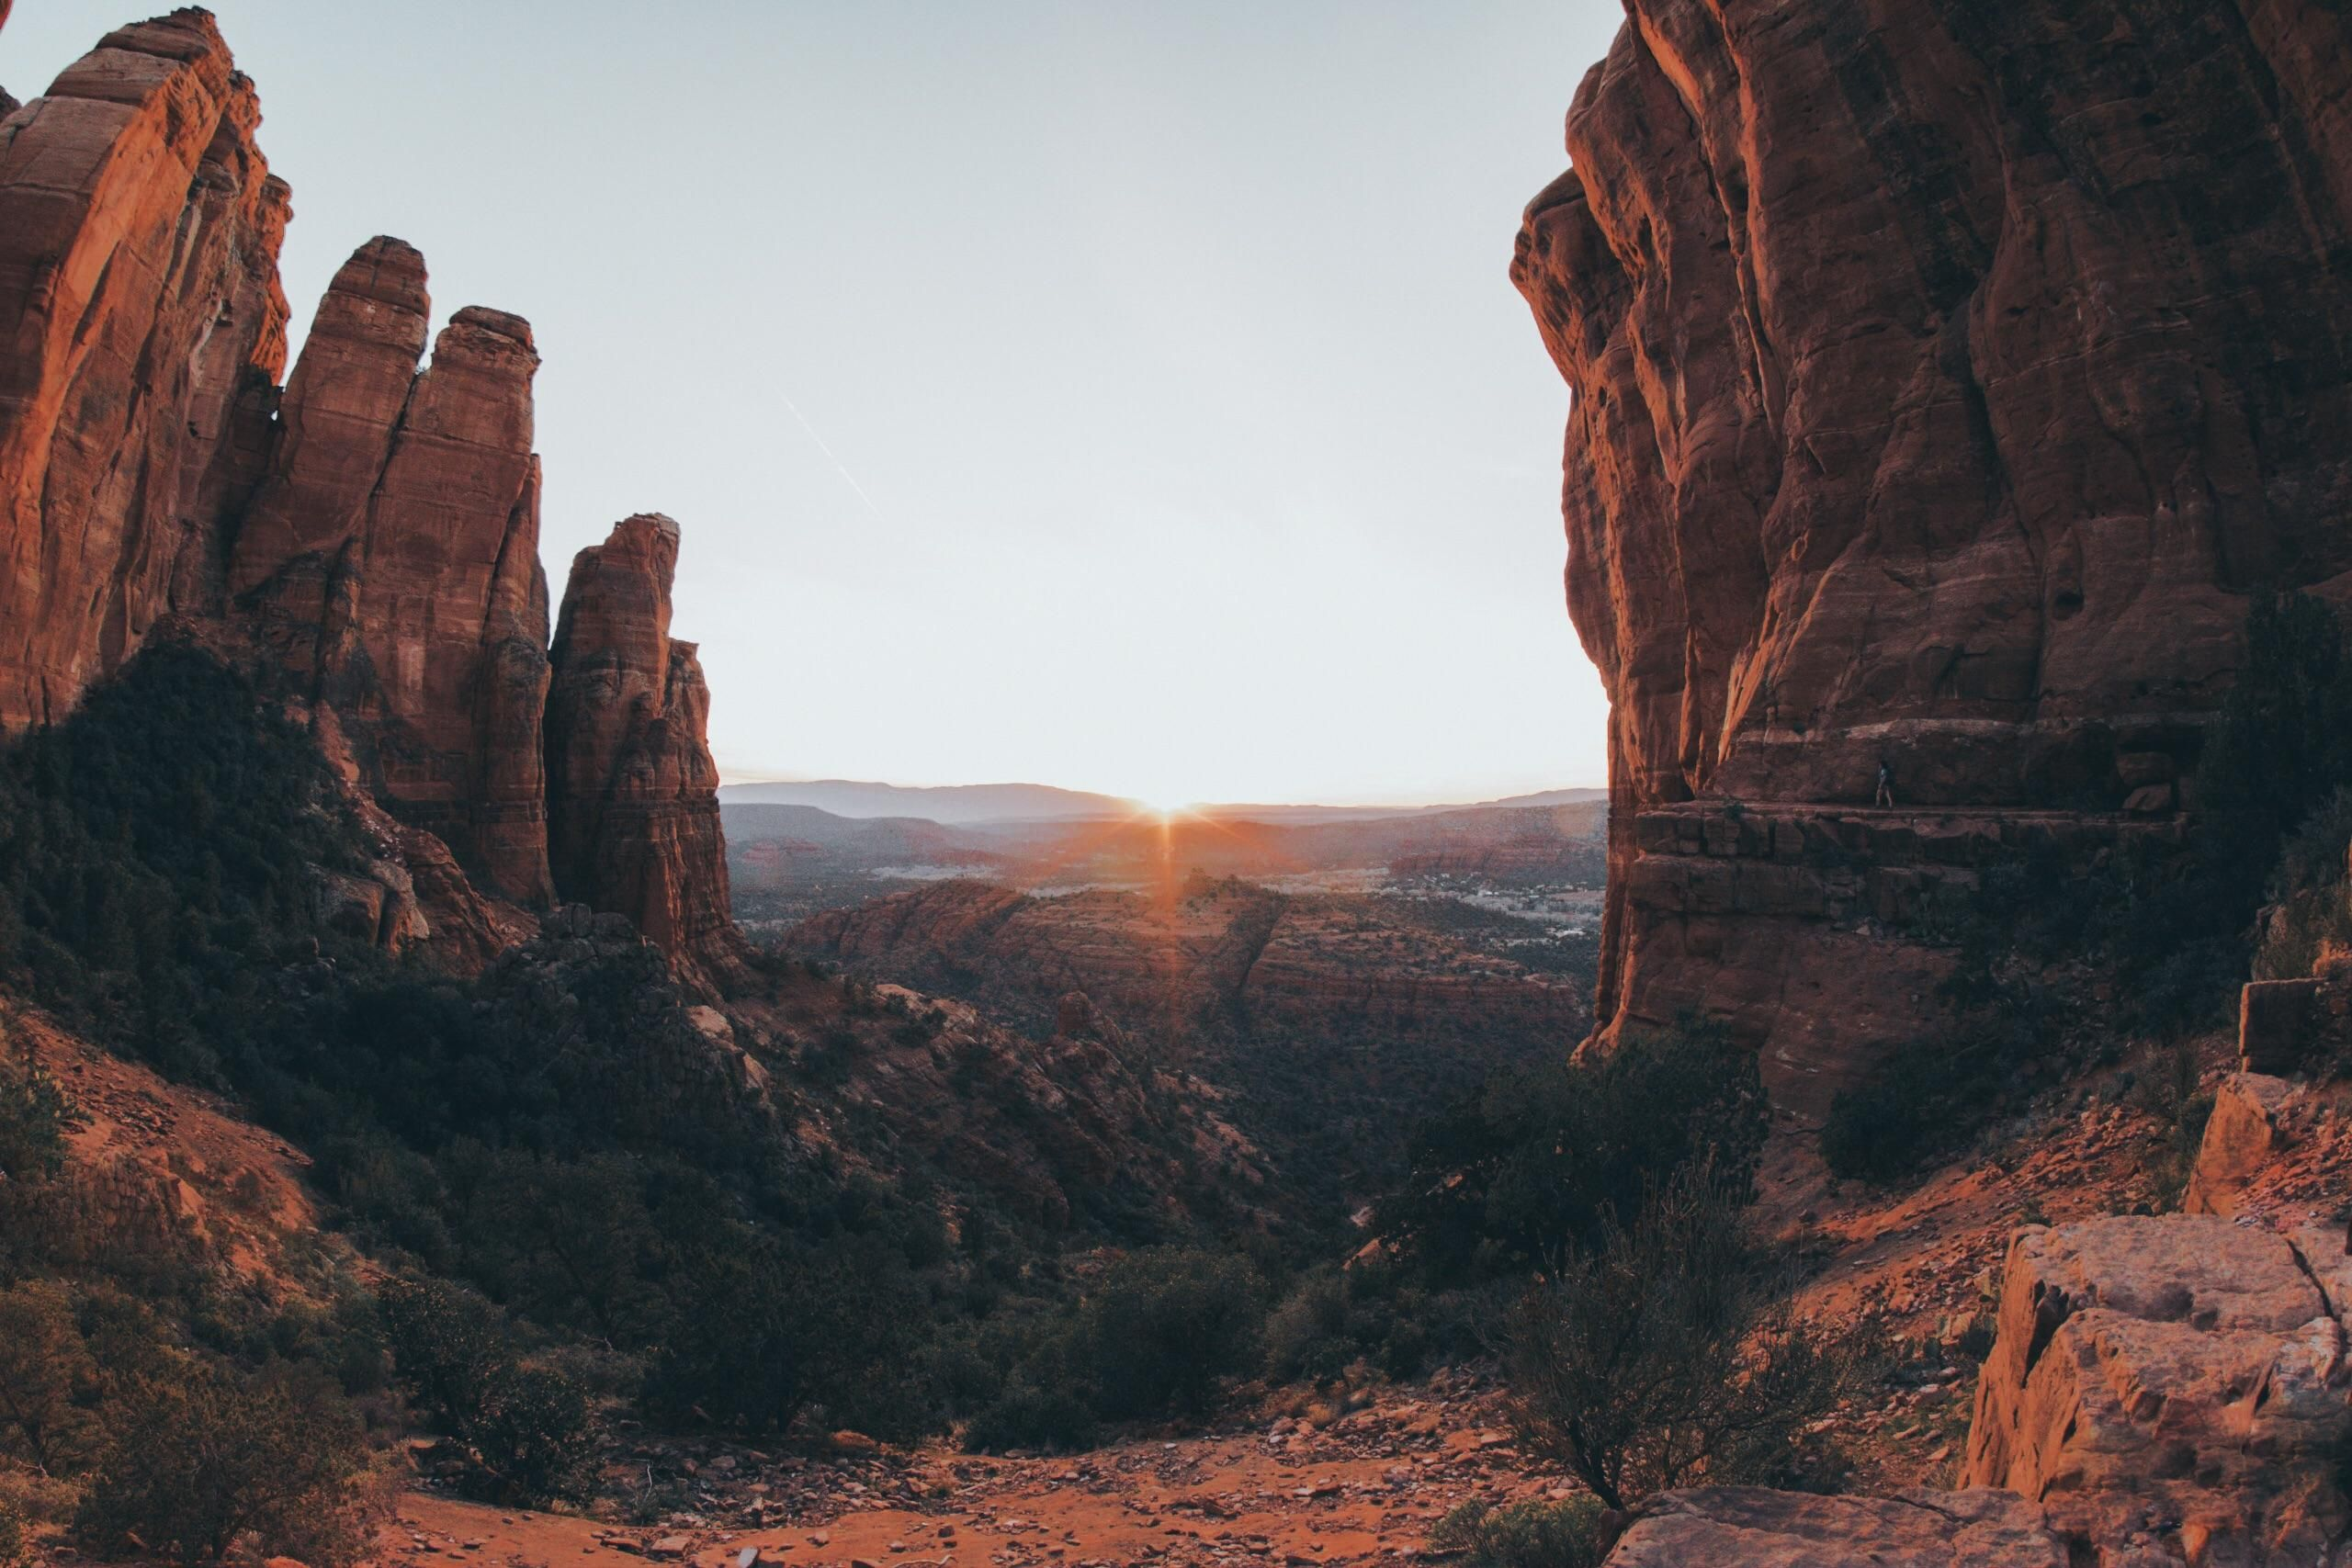 Sunset from Cathedral Rock in Sedona AZ [OC] [6000 x 4000]